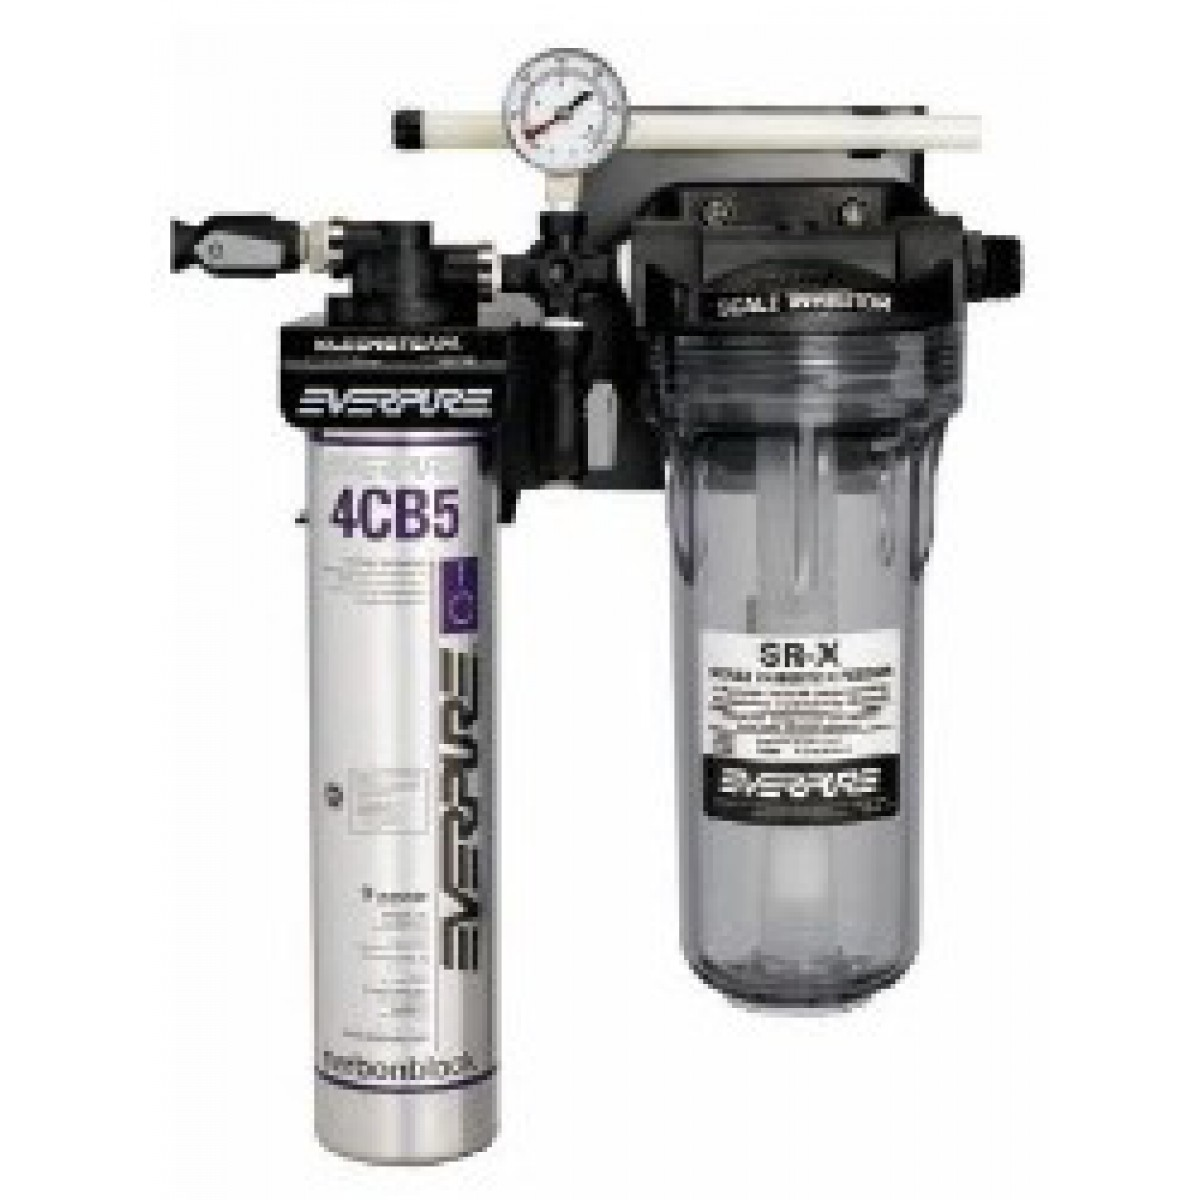 Everpure ev9797 50 kleensteam ct for Everpure water filter review